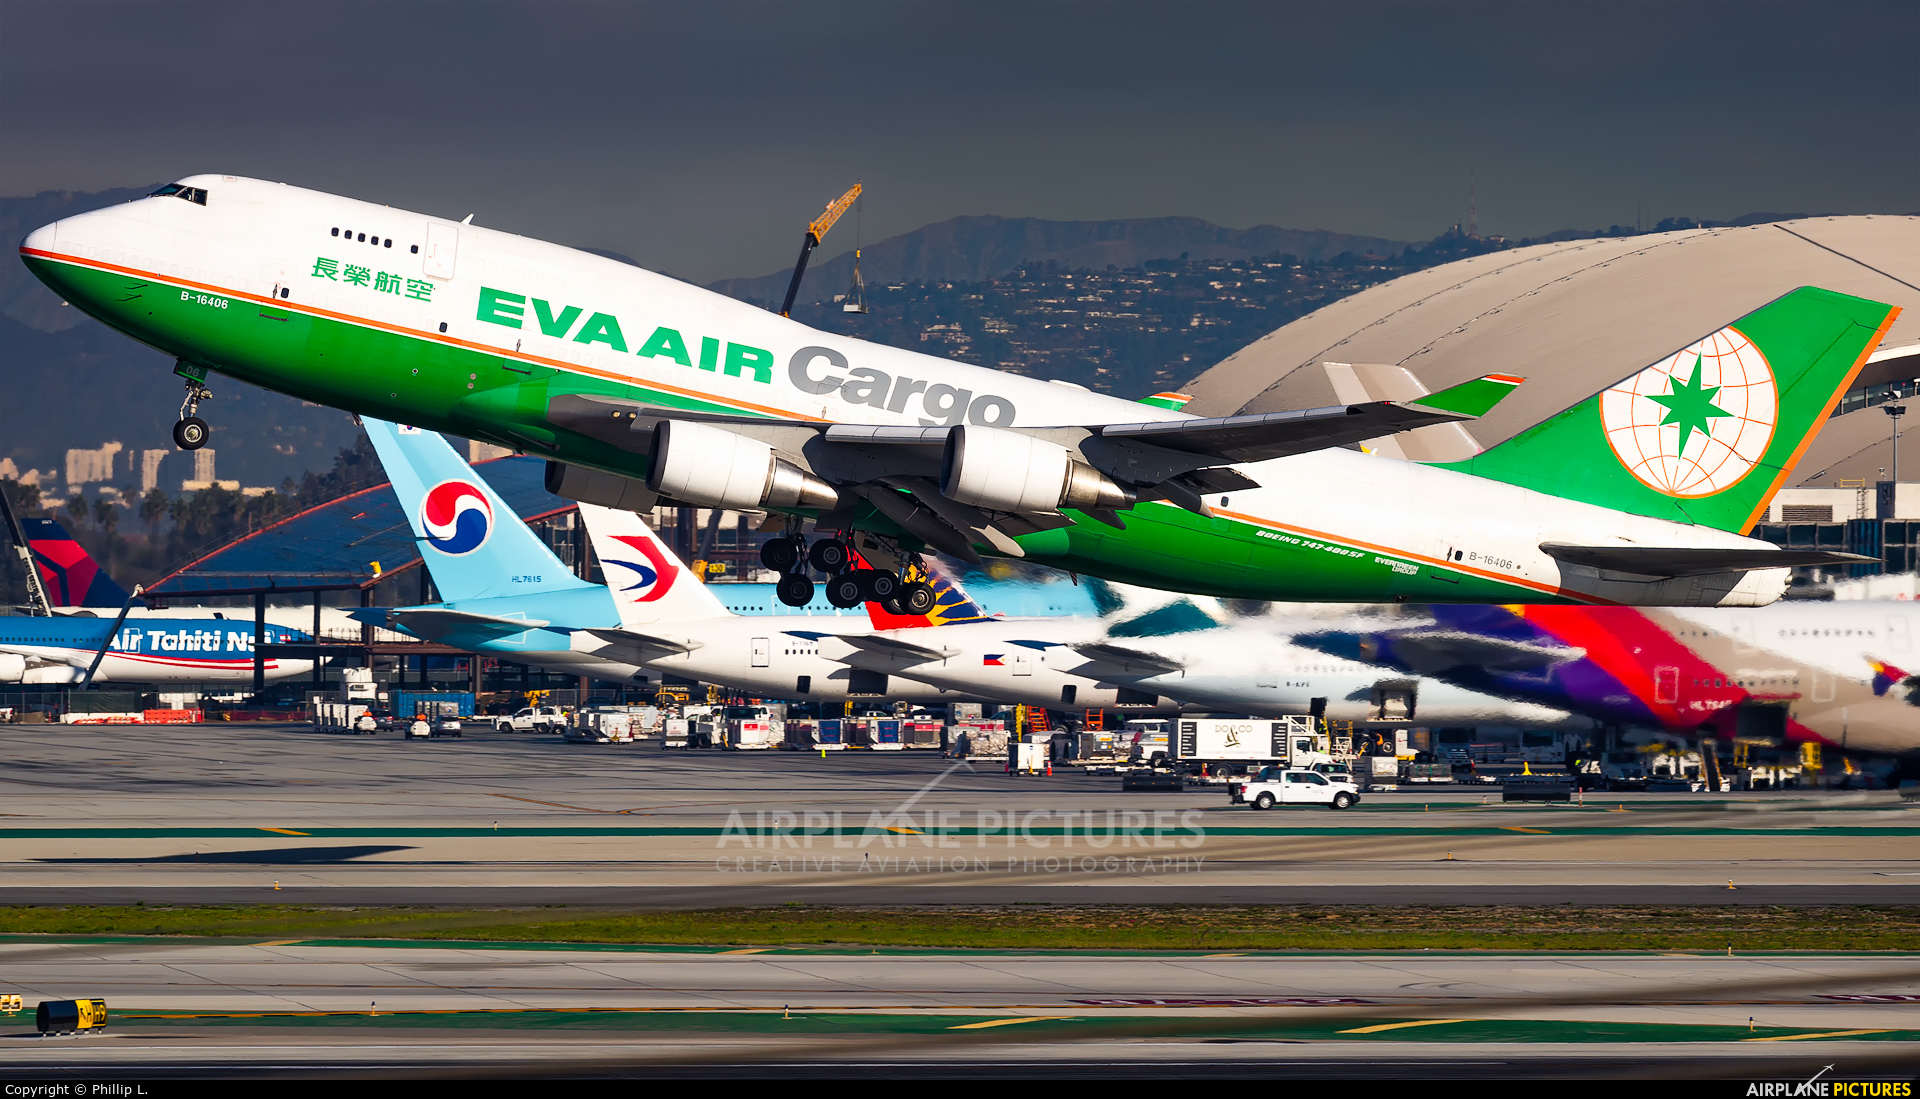 EVA Air Cargo B-16406 aircraft at Los Angeles Intl